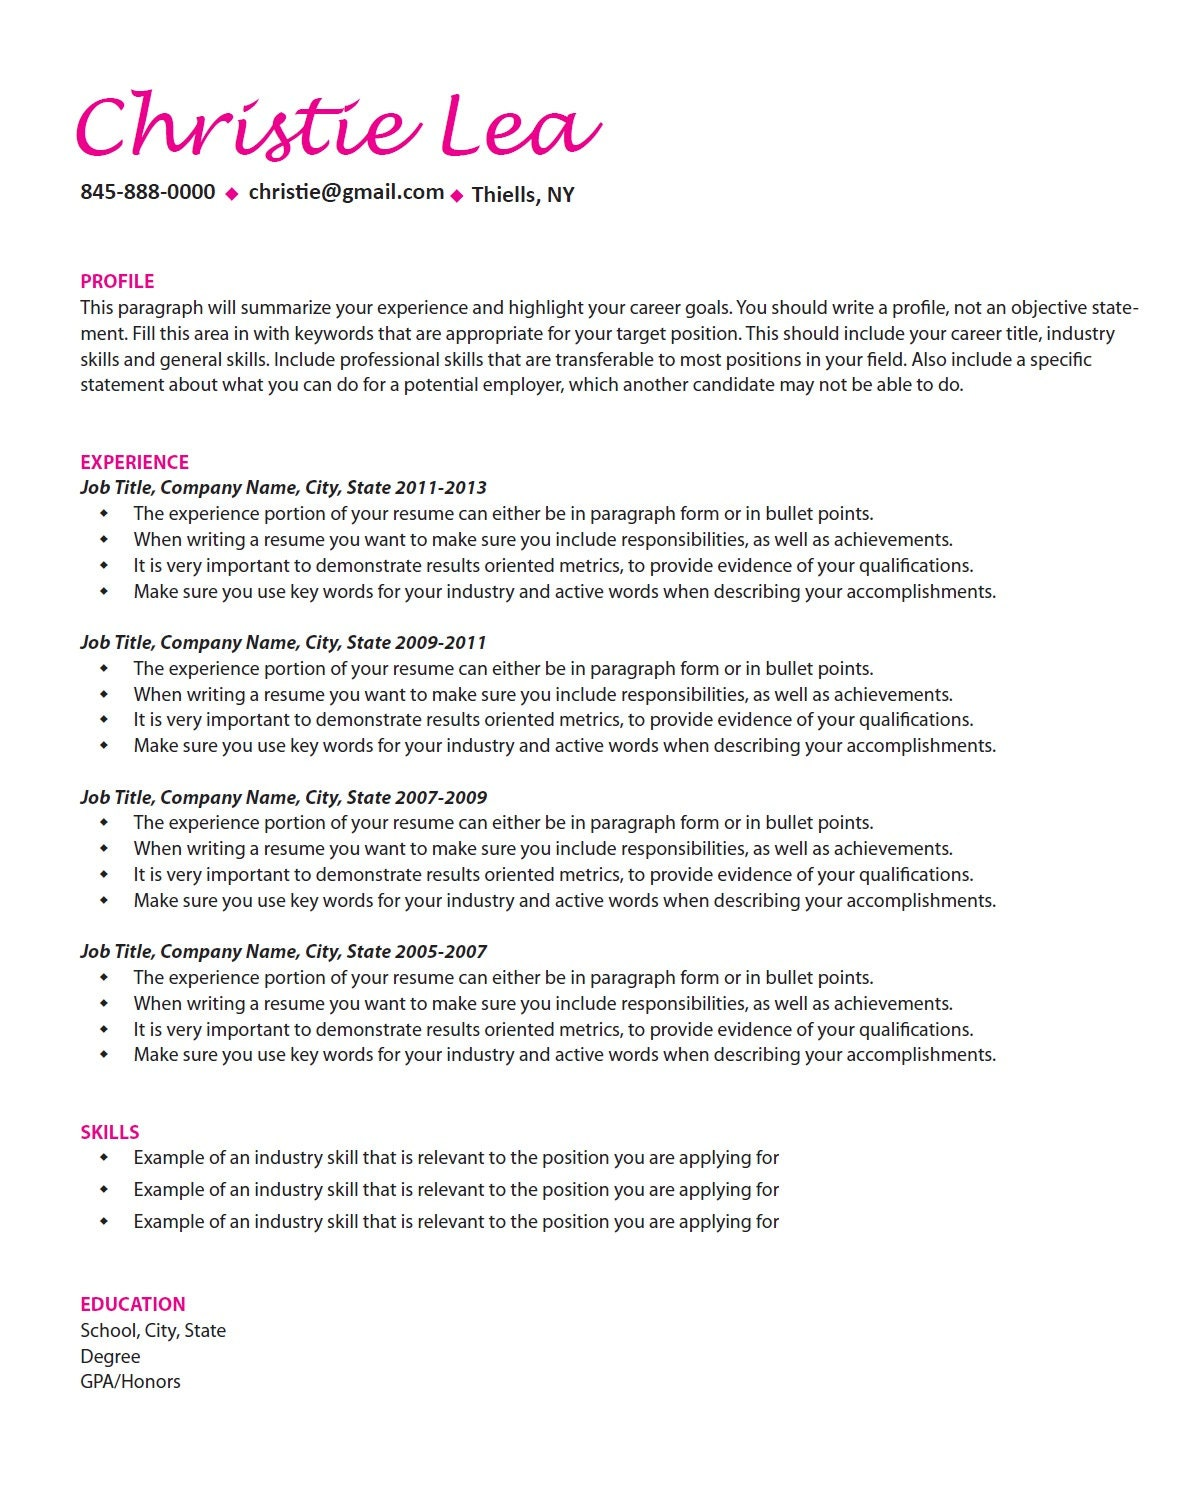 Professional Resume Writing Resume Help Job Search